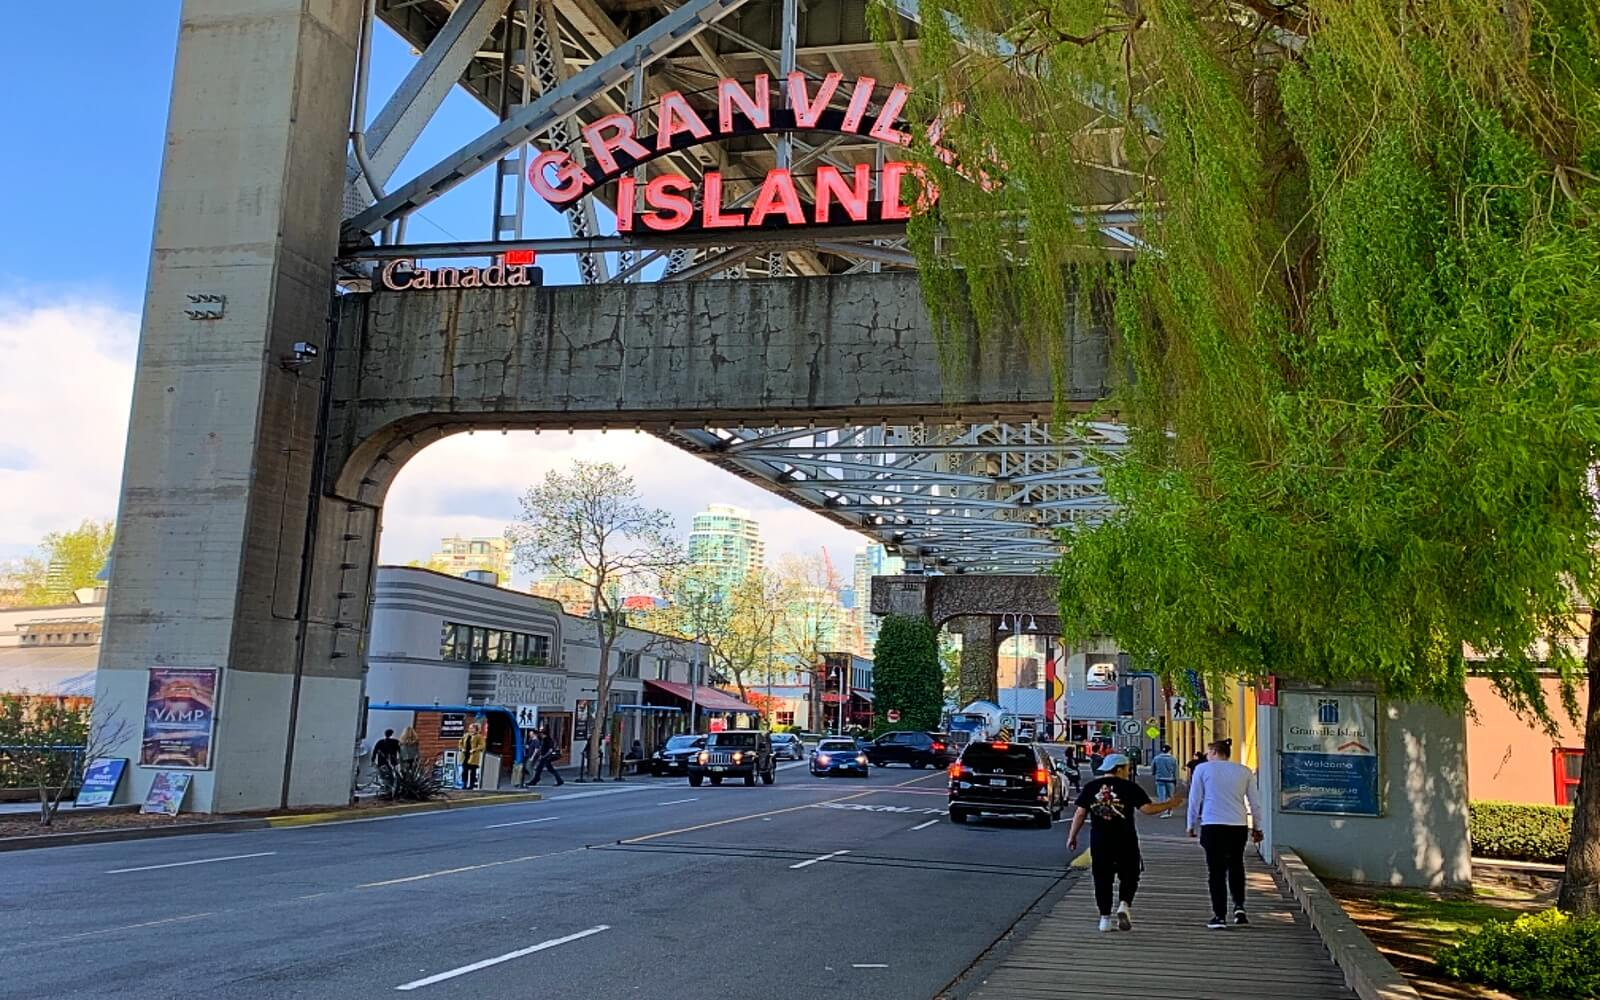 The entrance to Granville Island